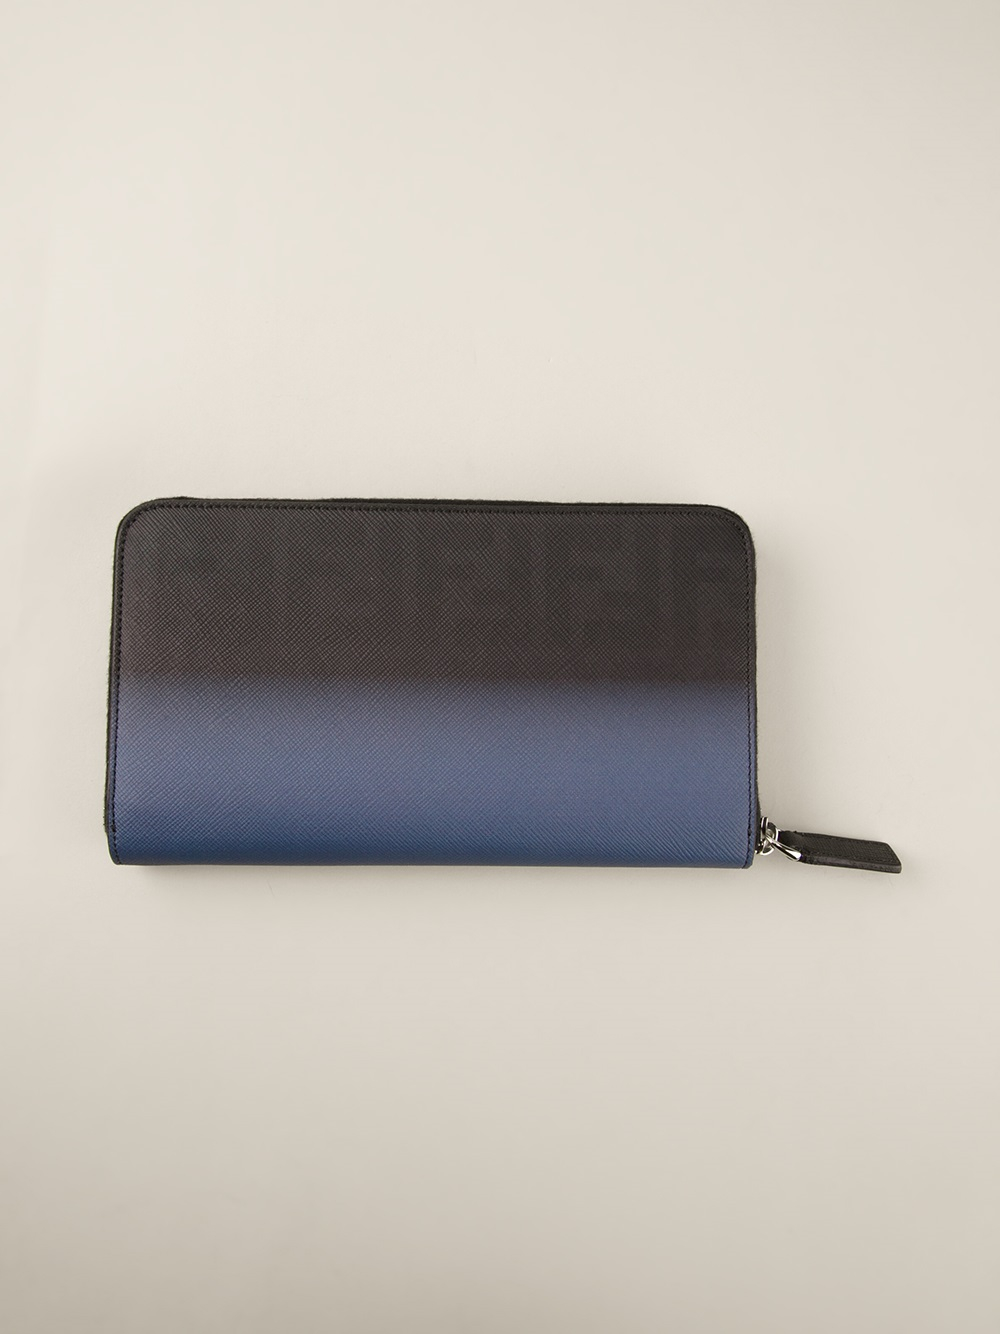 bd7bc44773c2 ... best price lyst fendi zip around long wallet in blue for men 5f7d3 60fcc